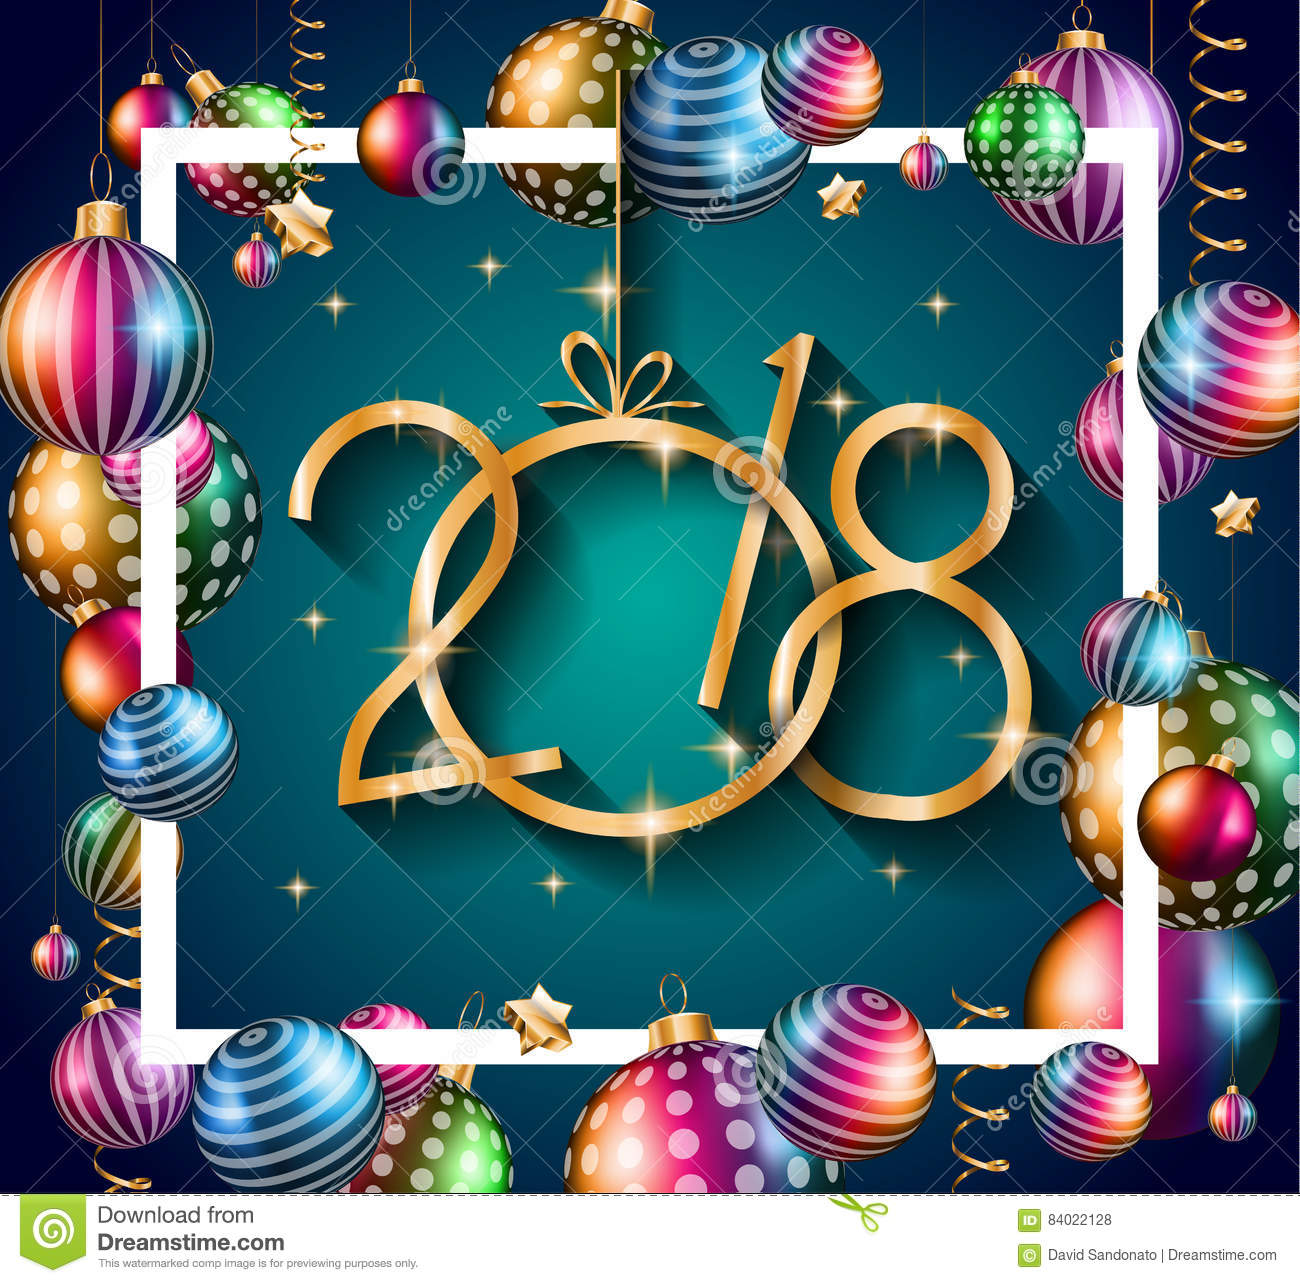 2018 happy new year background for your seasonal flyers